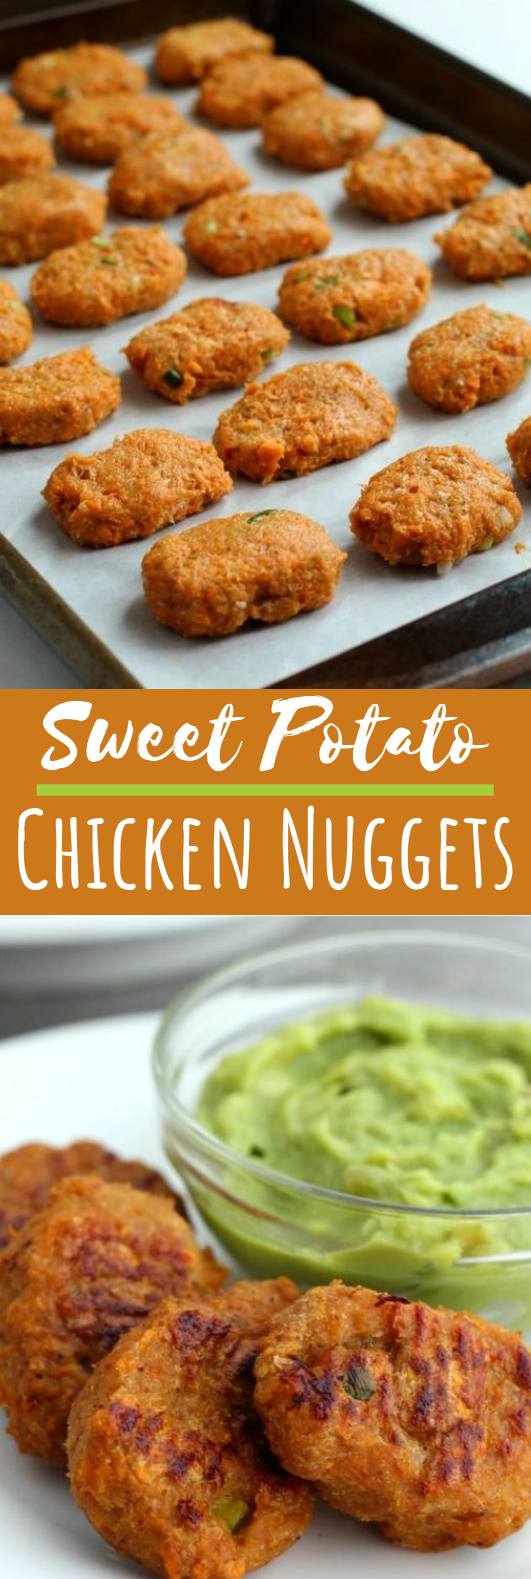 Sweet Potato Chicken Nuggets (Whole 30, Paleo) #healthy #chicken